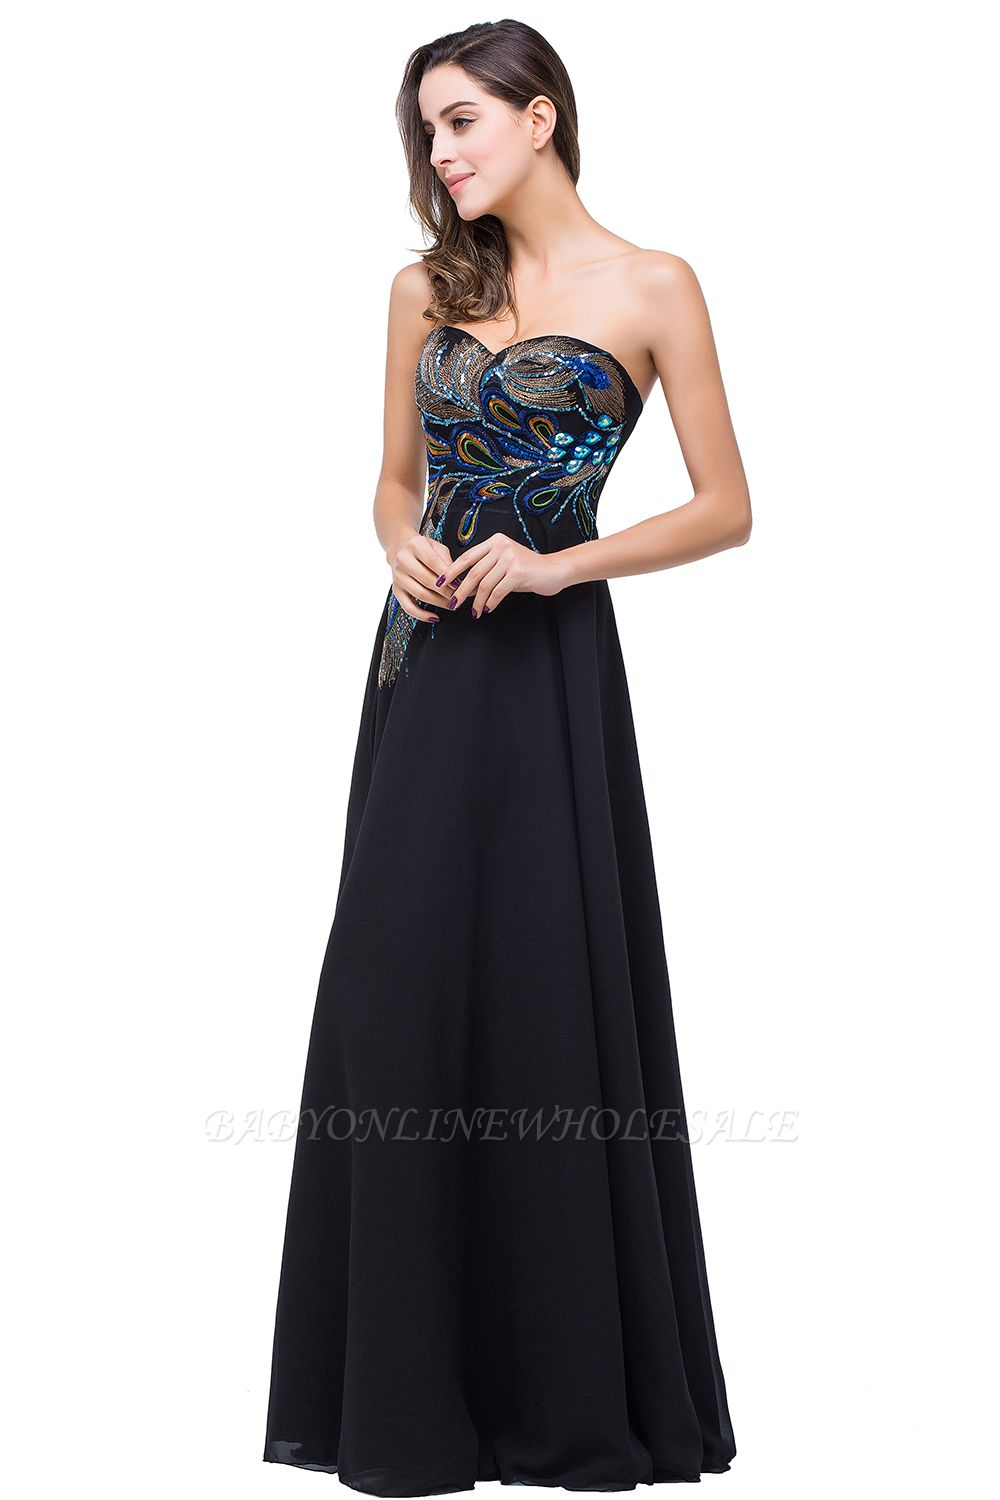 ADALYNN | A-line Sweetheart Black Evening Dress with Embroidery